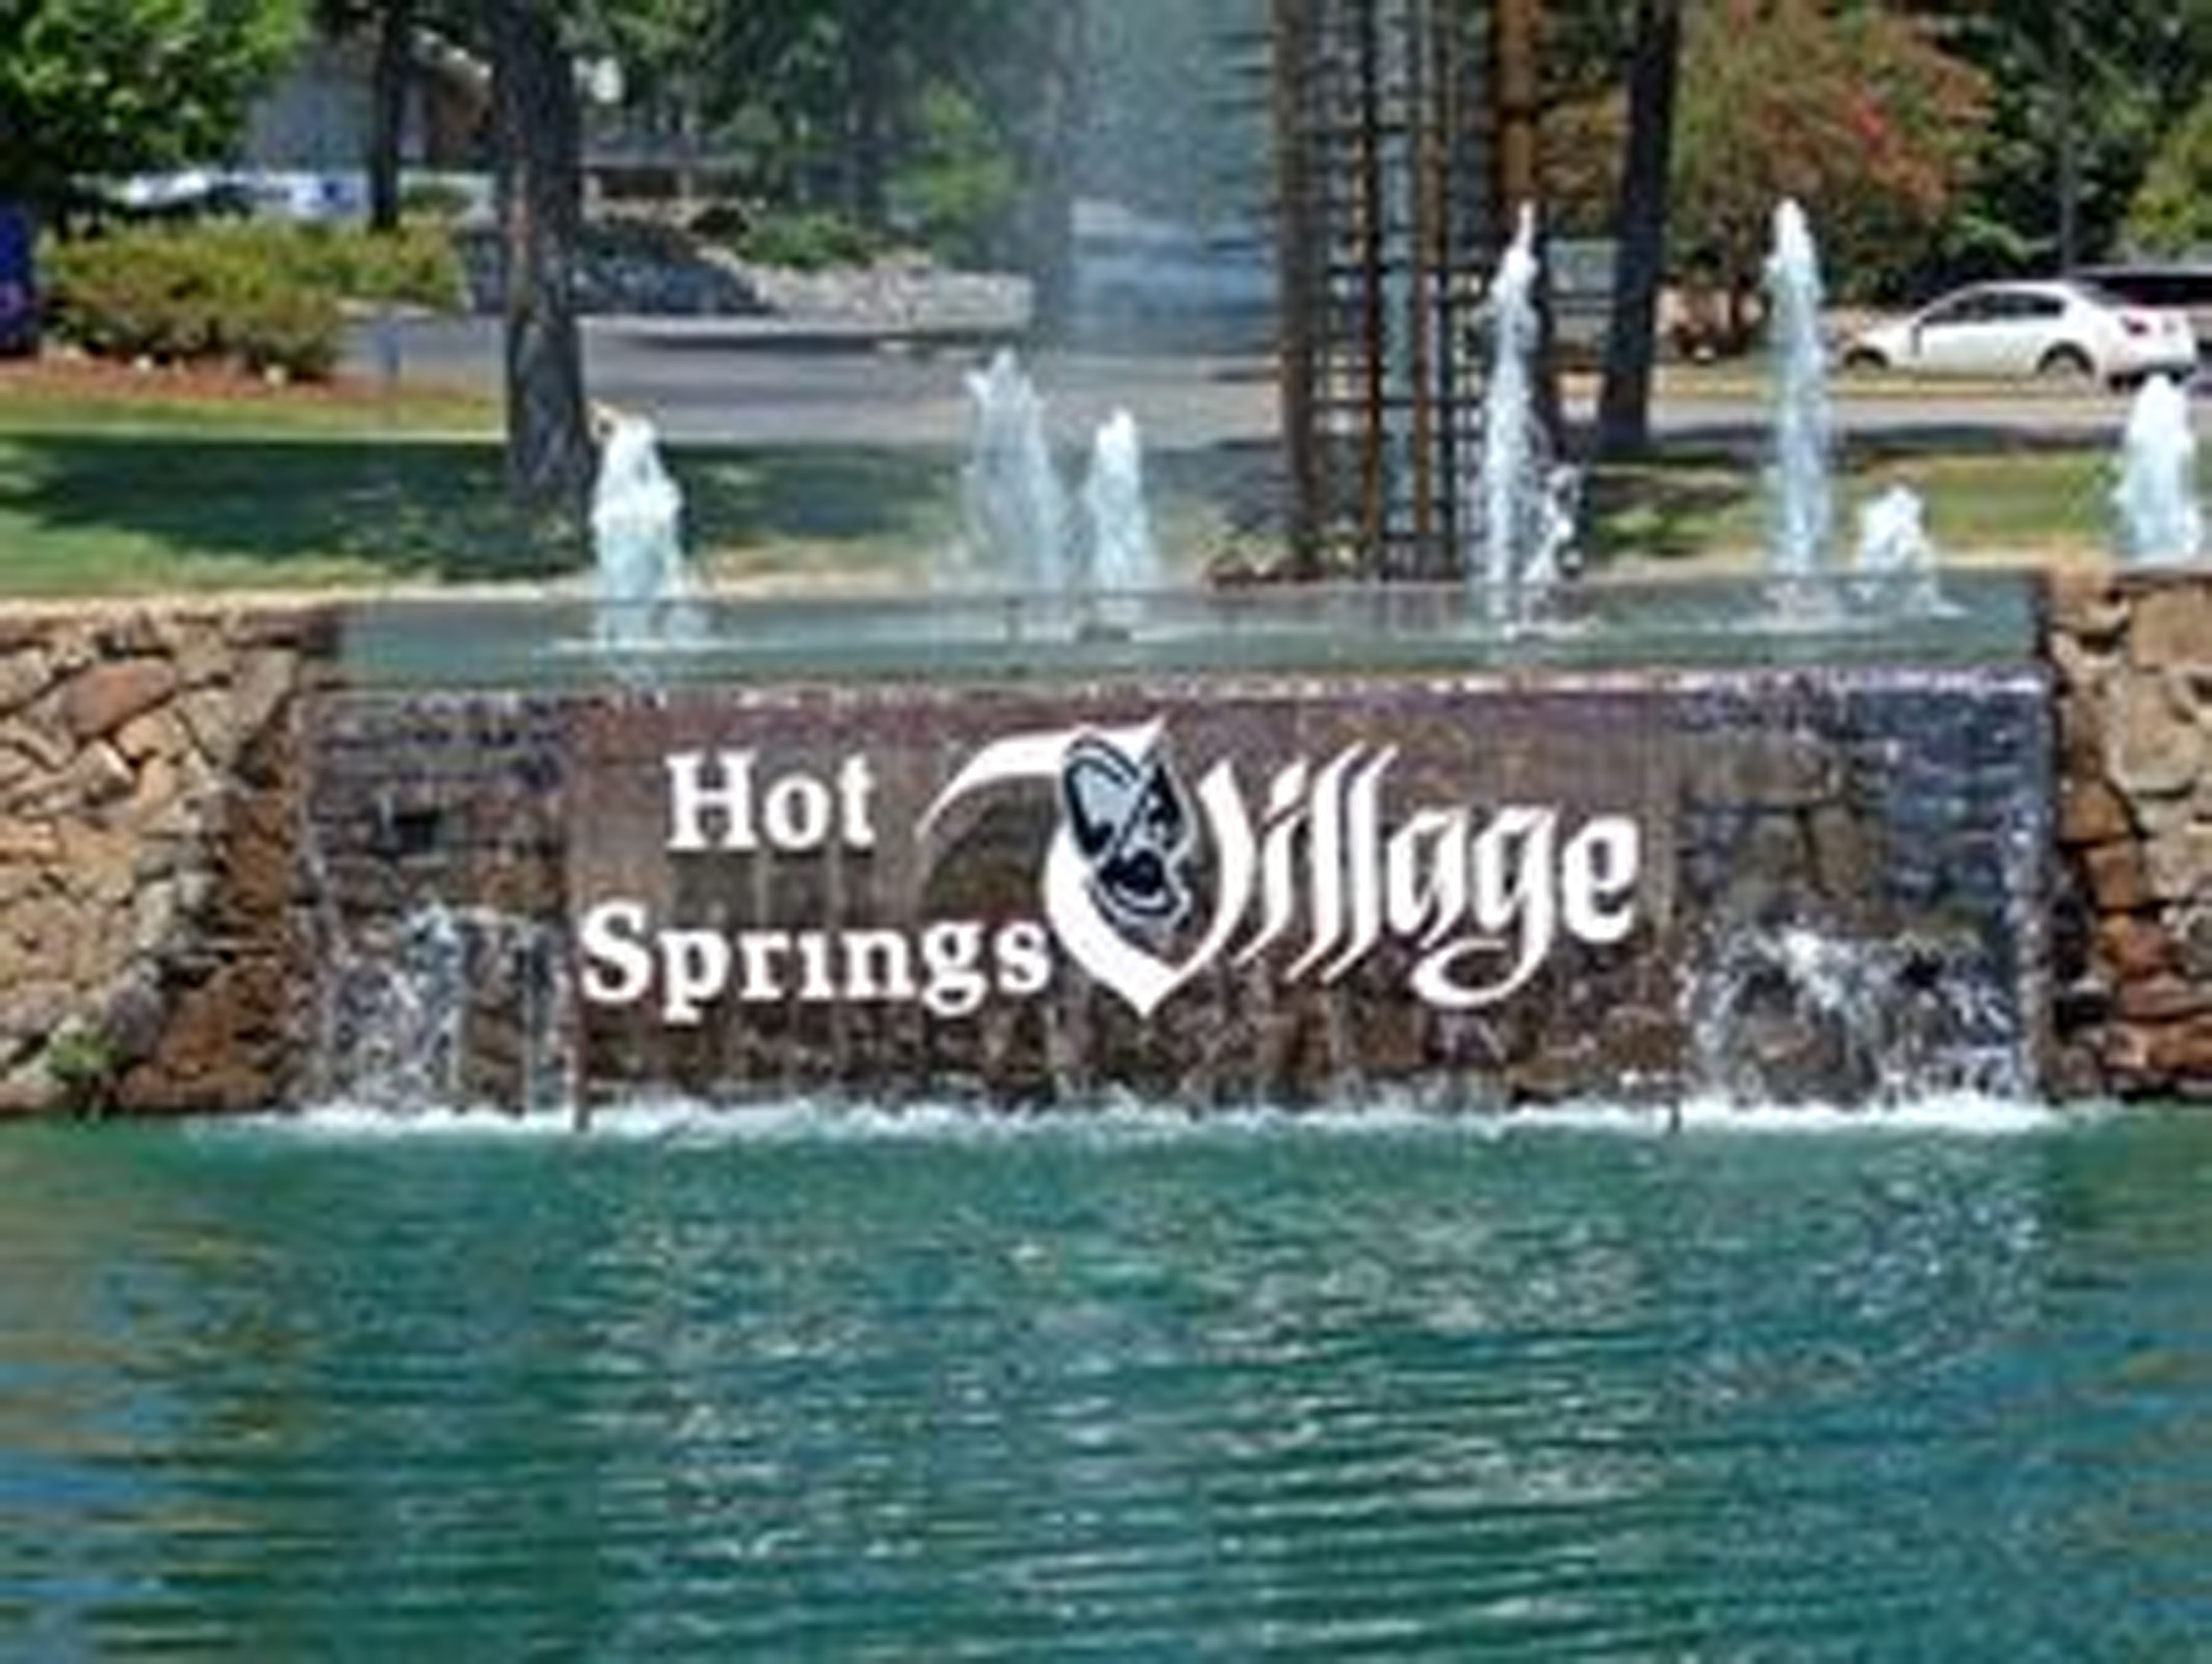 Discount hotels and attractions in Hot Springs Village,